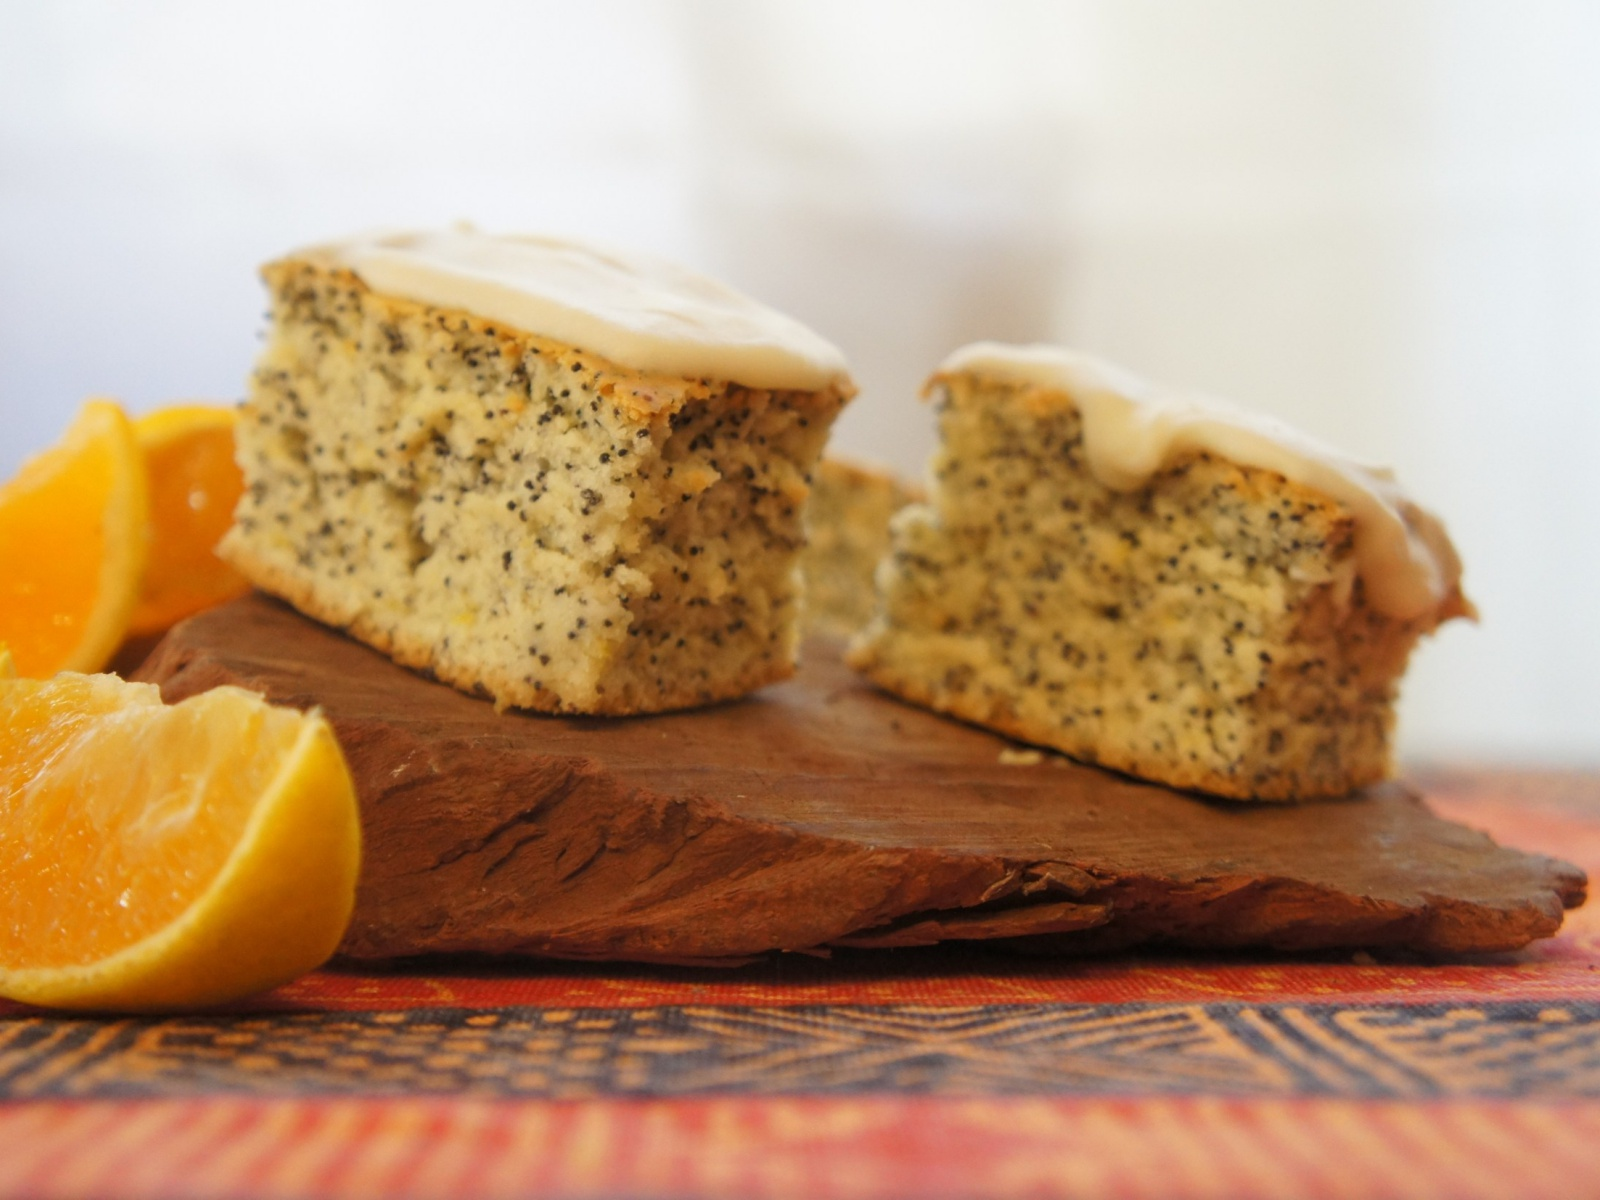 Vegan orange poppyseed cake